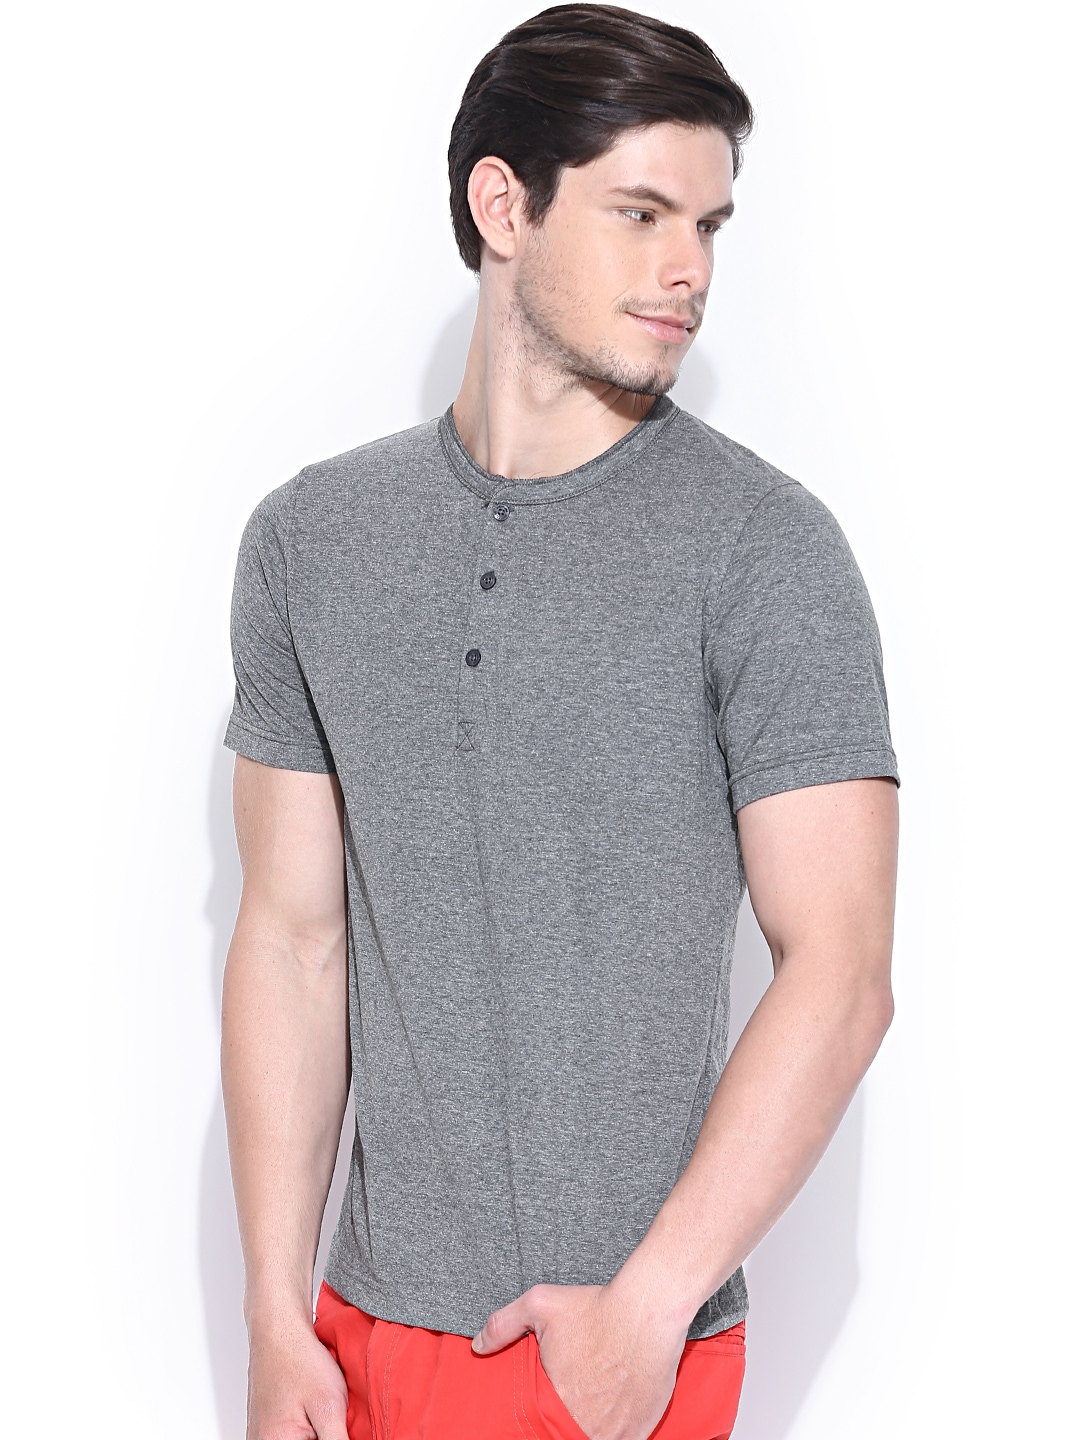 Find henley shirts at Macy's Macy's Presents: The Edit - A curated mix of fashion and inspiration Check It Out Free Shipping with $49 purchase + Free Store Pickup.